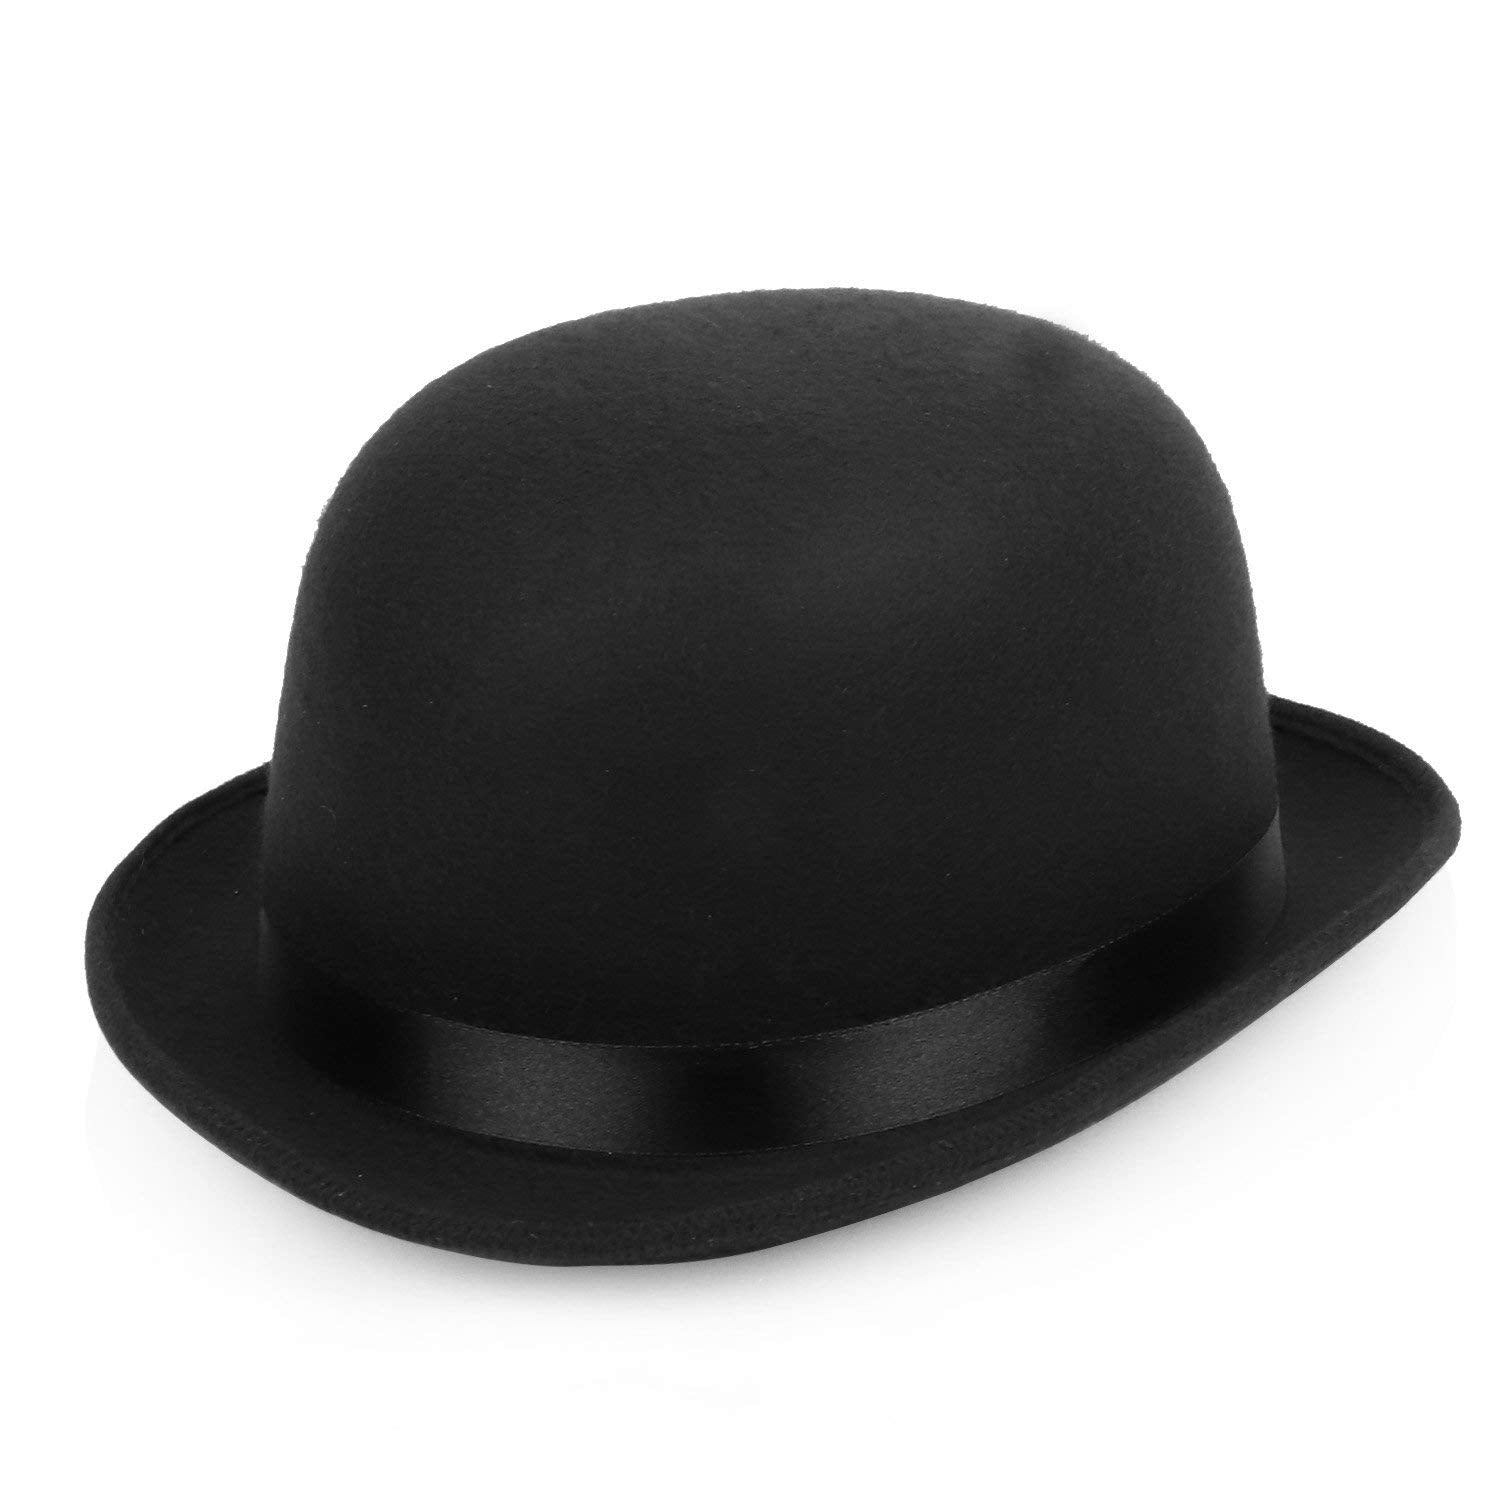 Armycrew 4.5 Inch High Deluxe Felt Derby Bowler Hat with Precurved Bill c4a1c0fca5c0